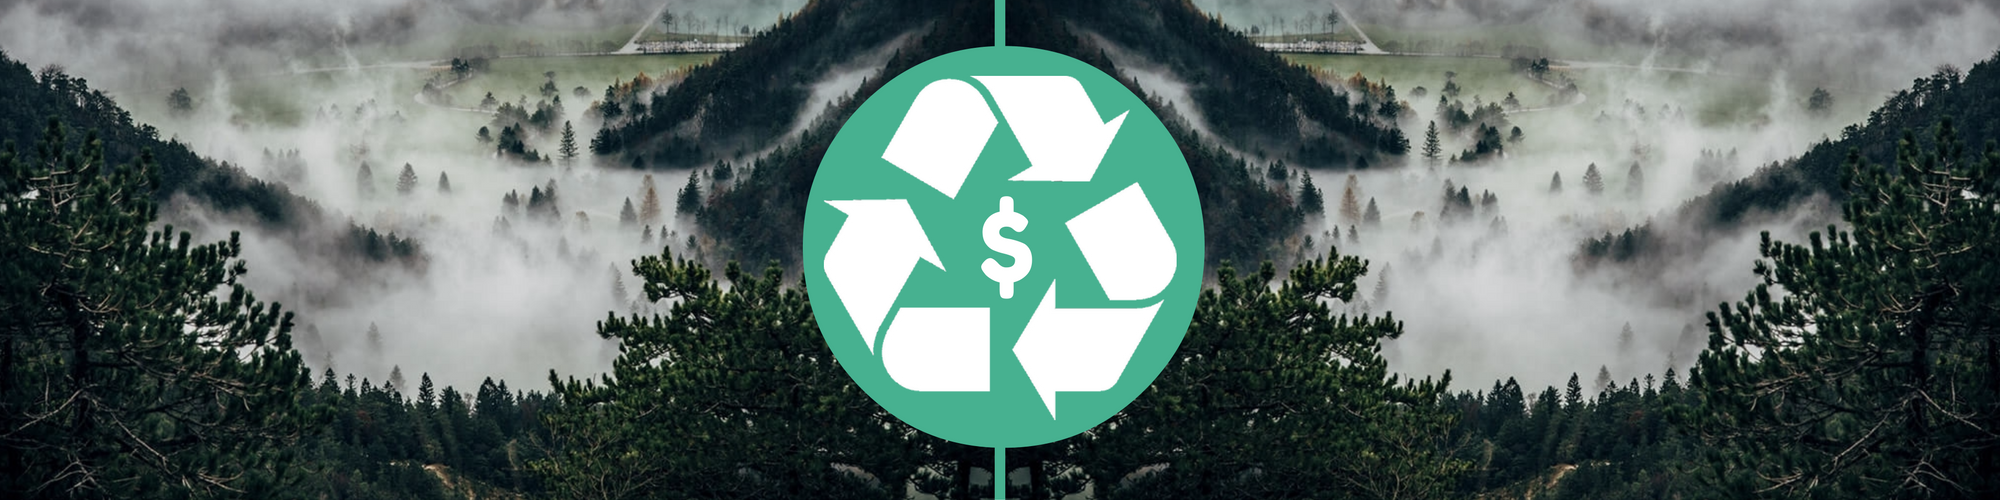 what-is-the-value-of-my-recycled-materials-does-it-save-money-header